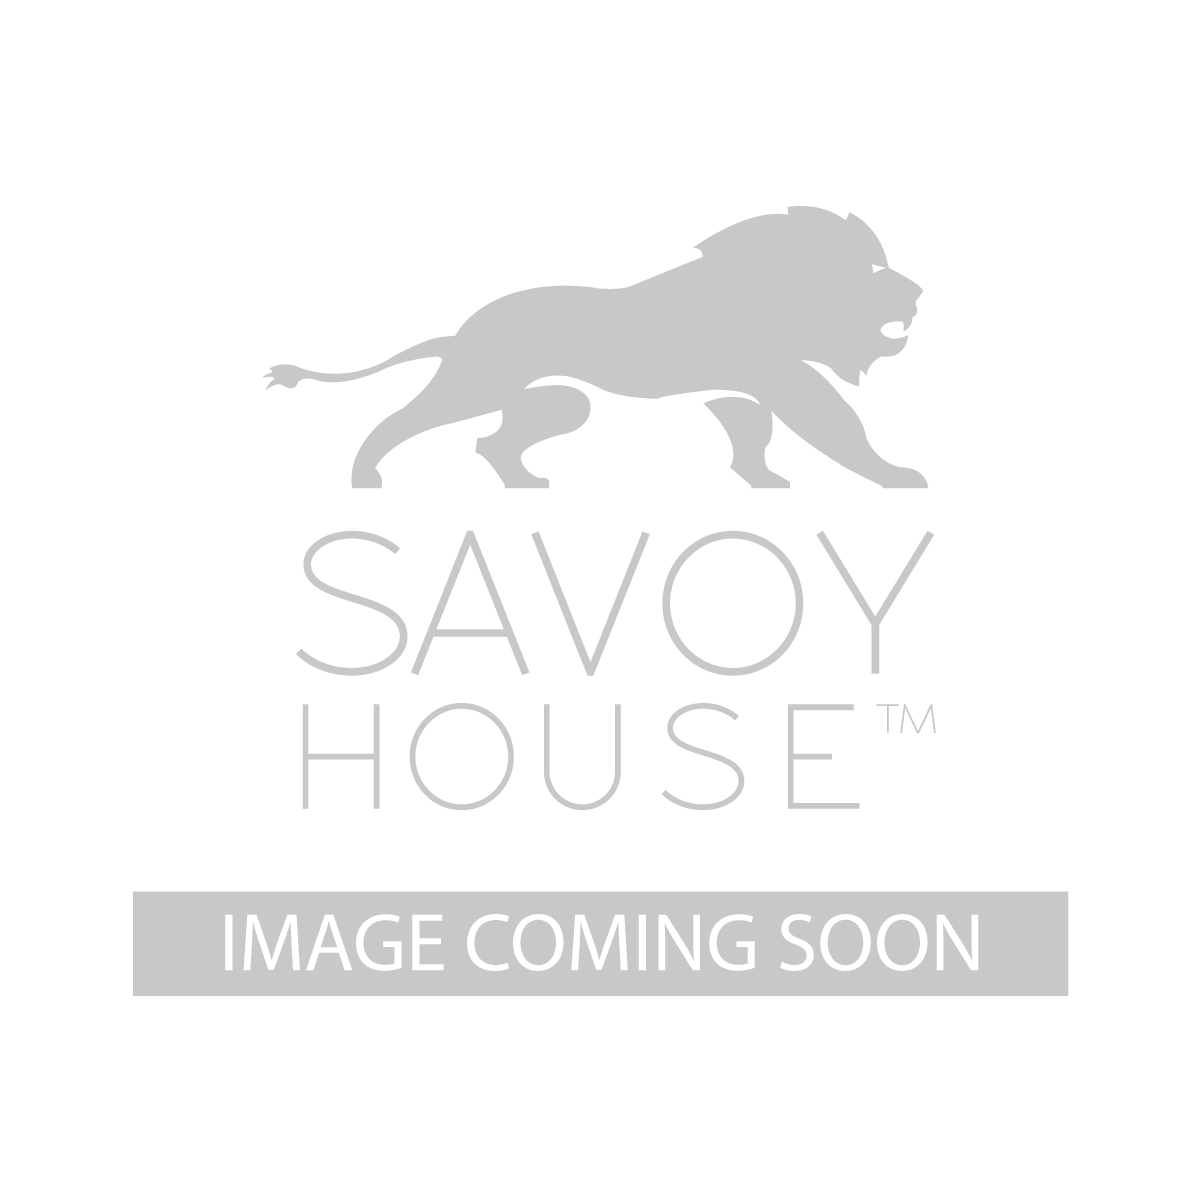 5 1231 BK Dorado Wall Lantern By Savoy House